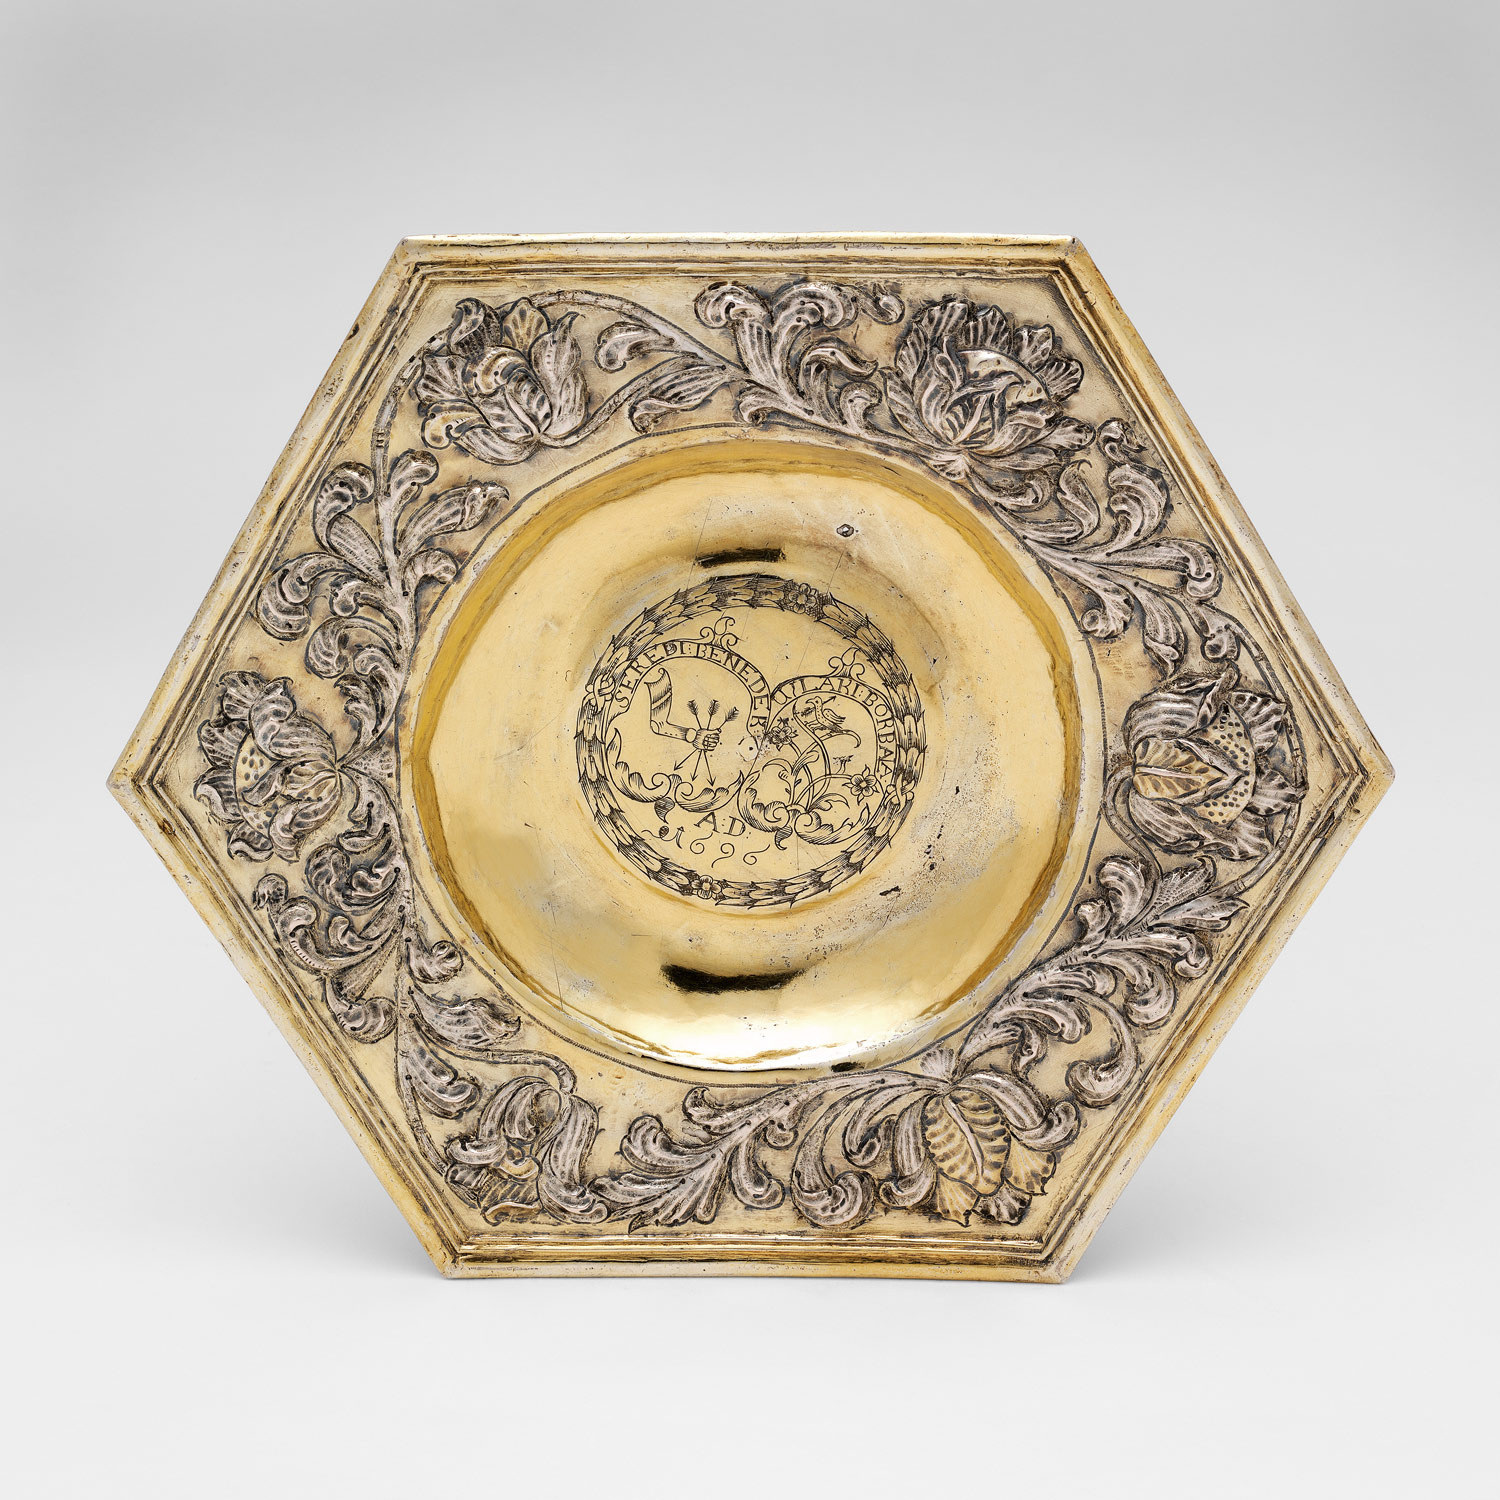 Hexagonal dish